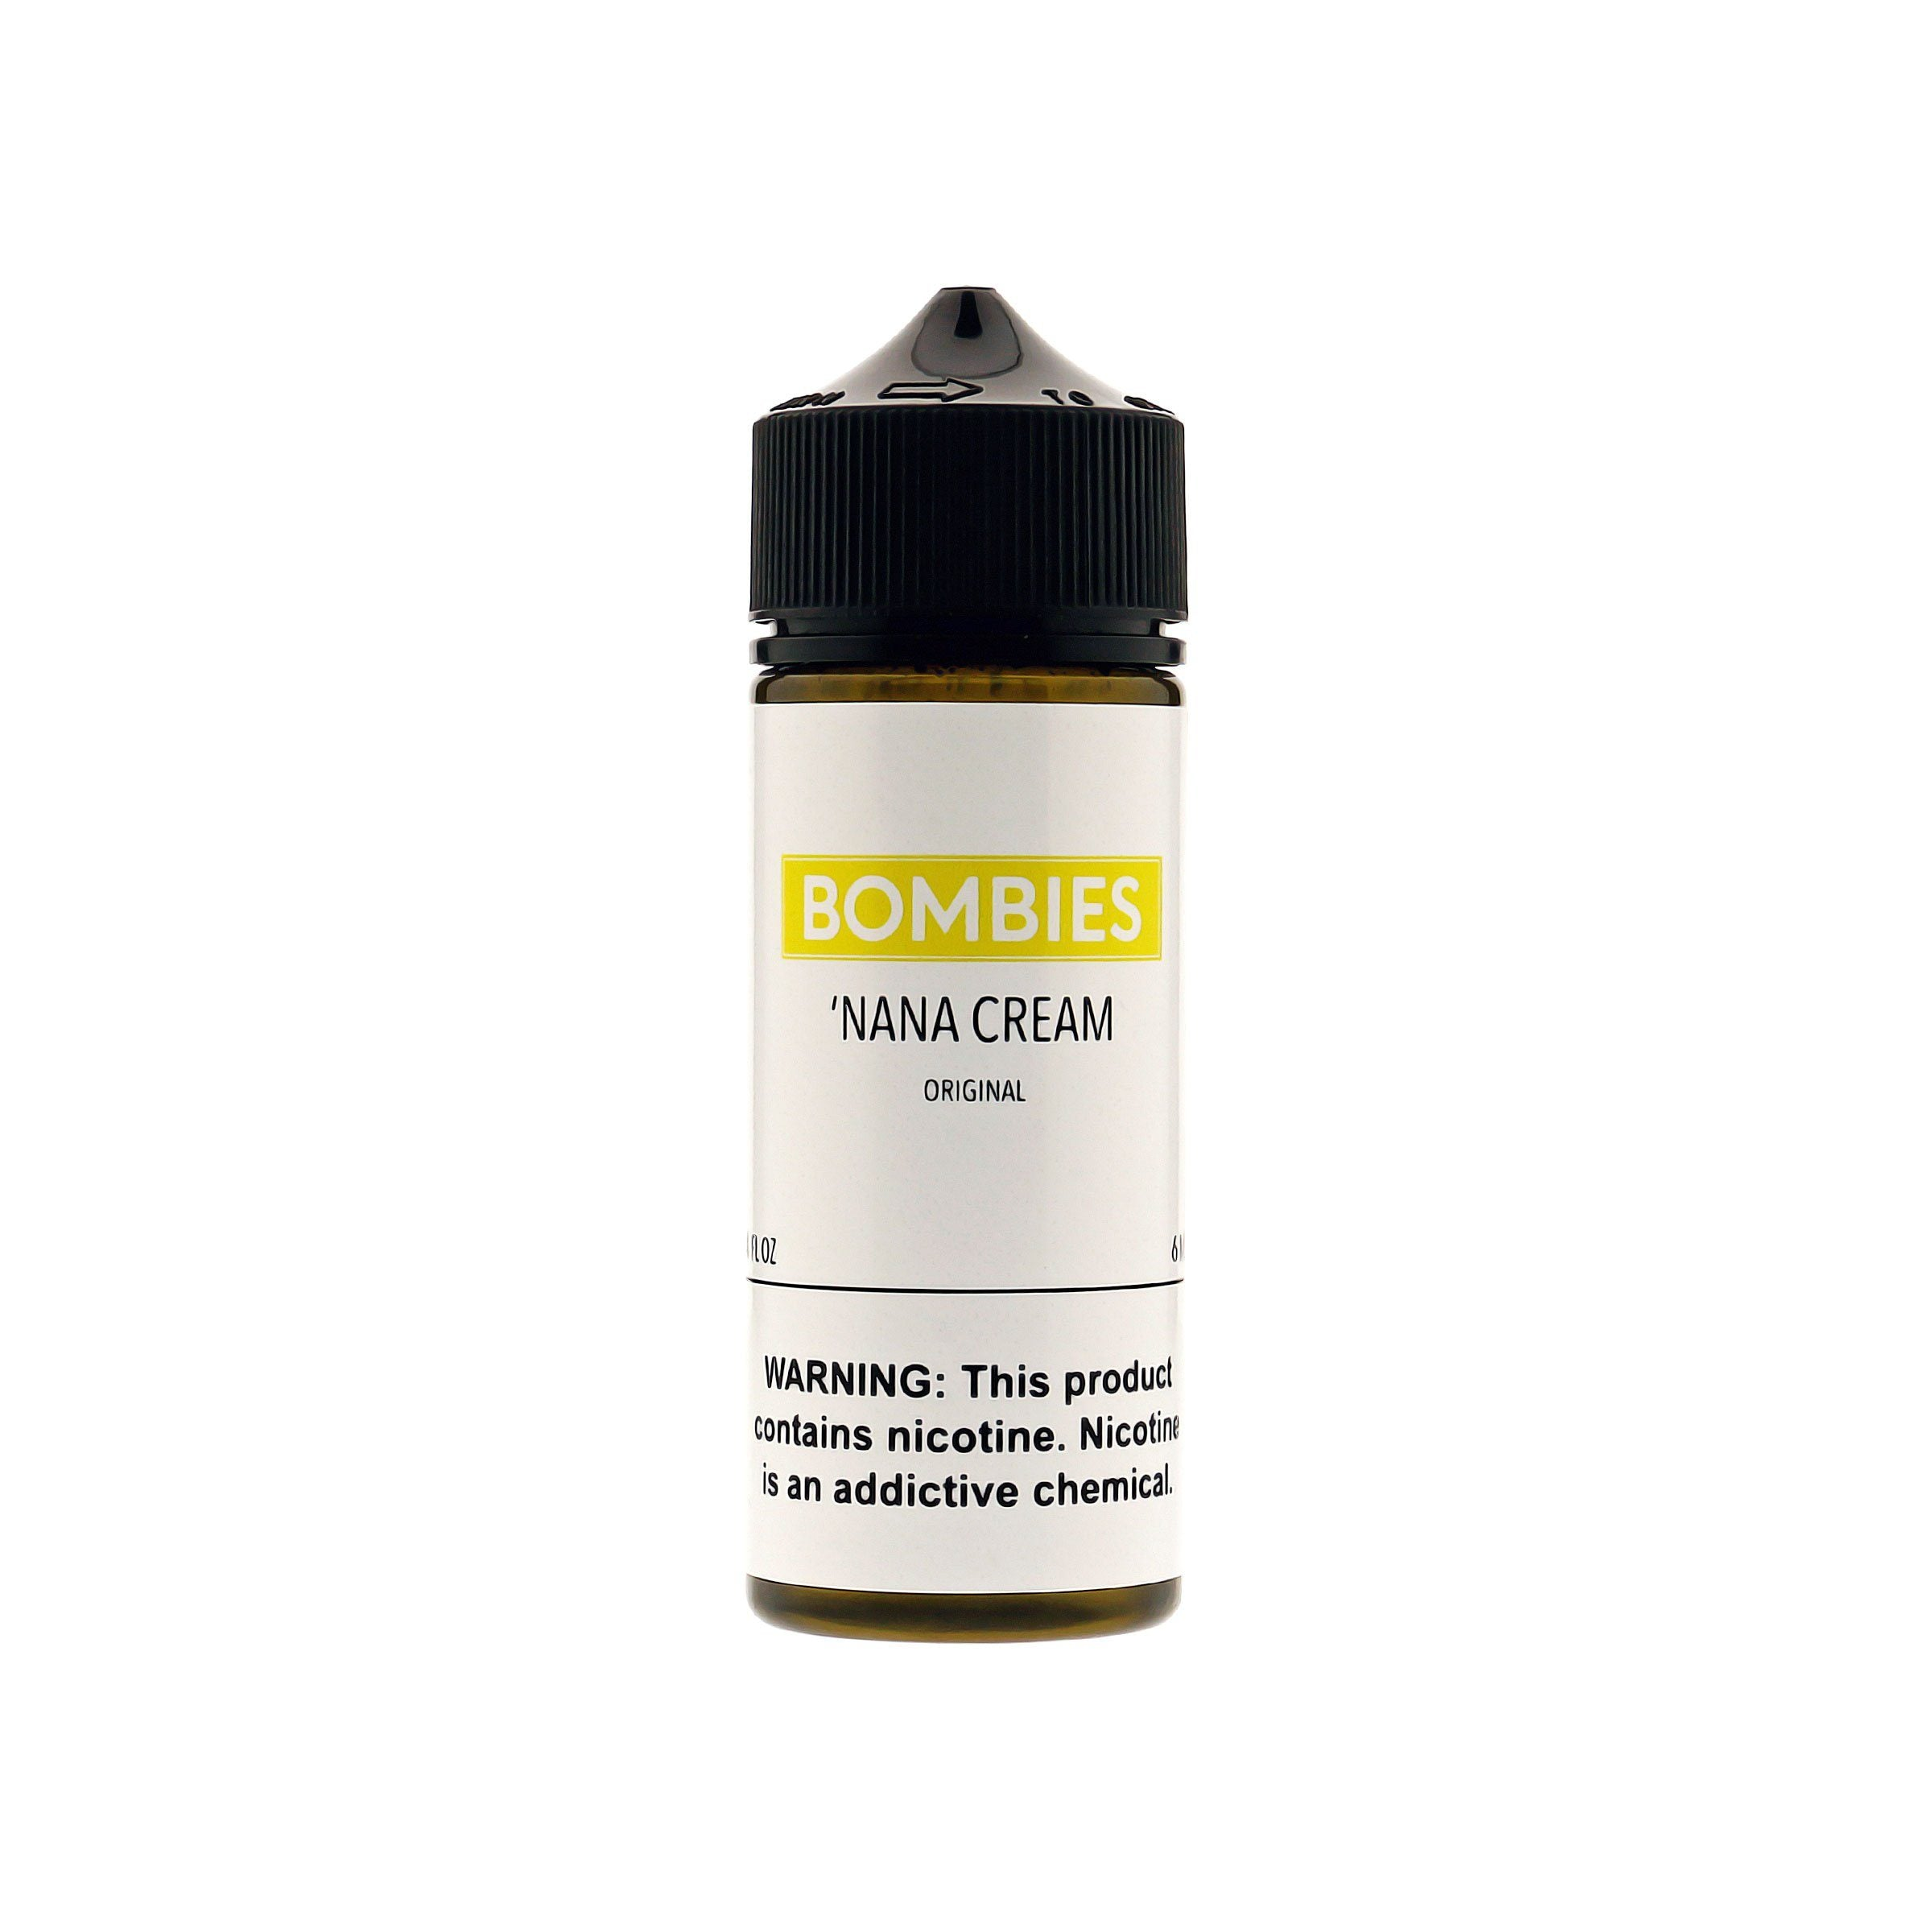 Bombies 'Nana Cream E-Juice